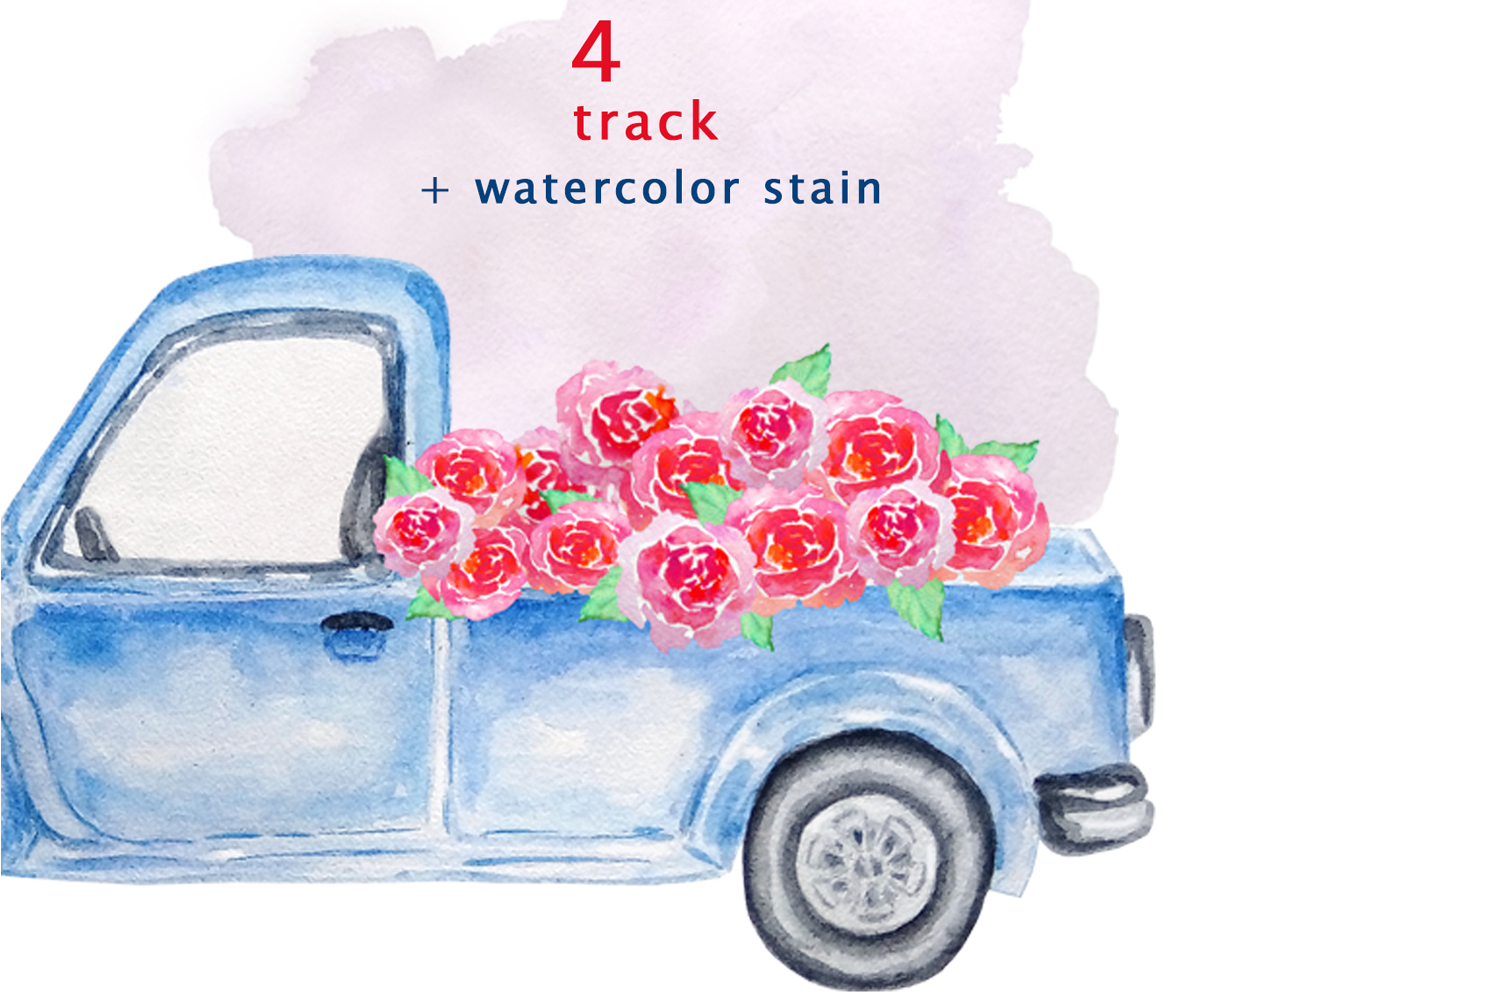 Watercolor Blue Track Clipart example image 4